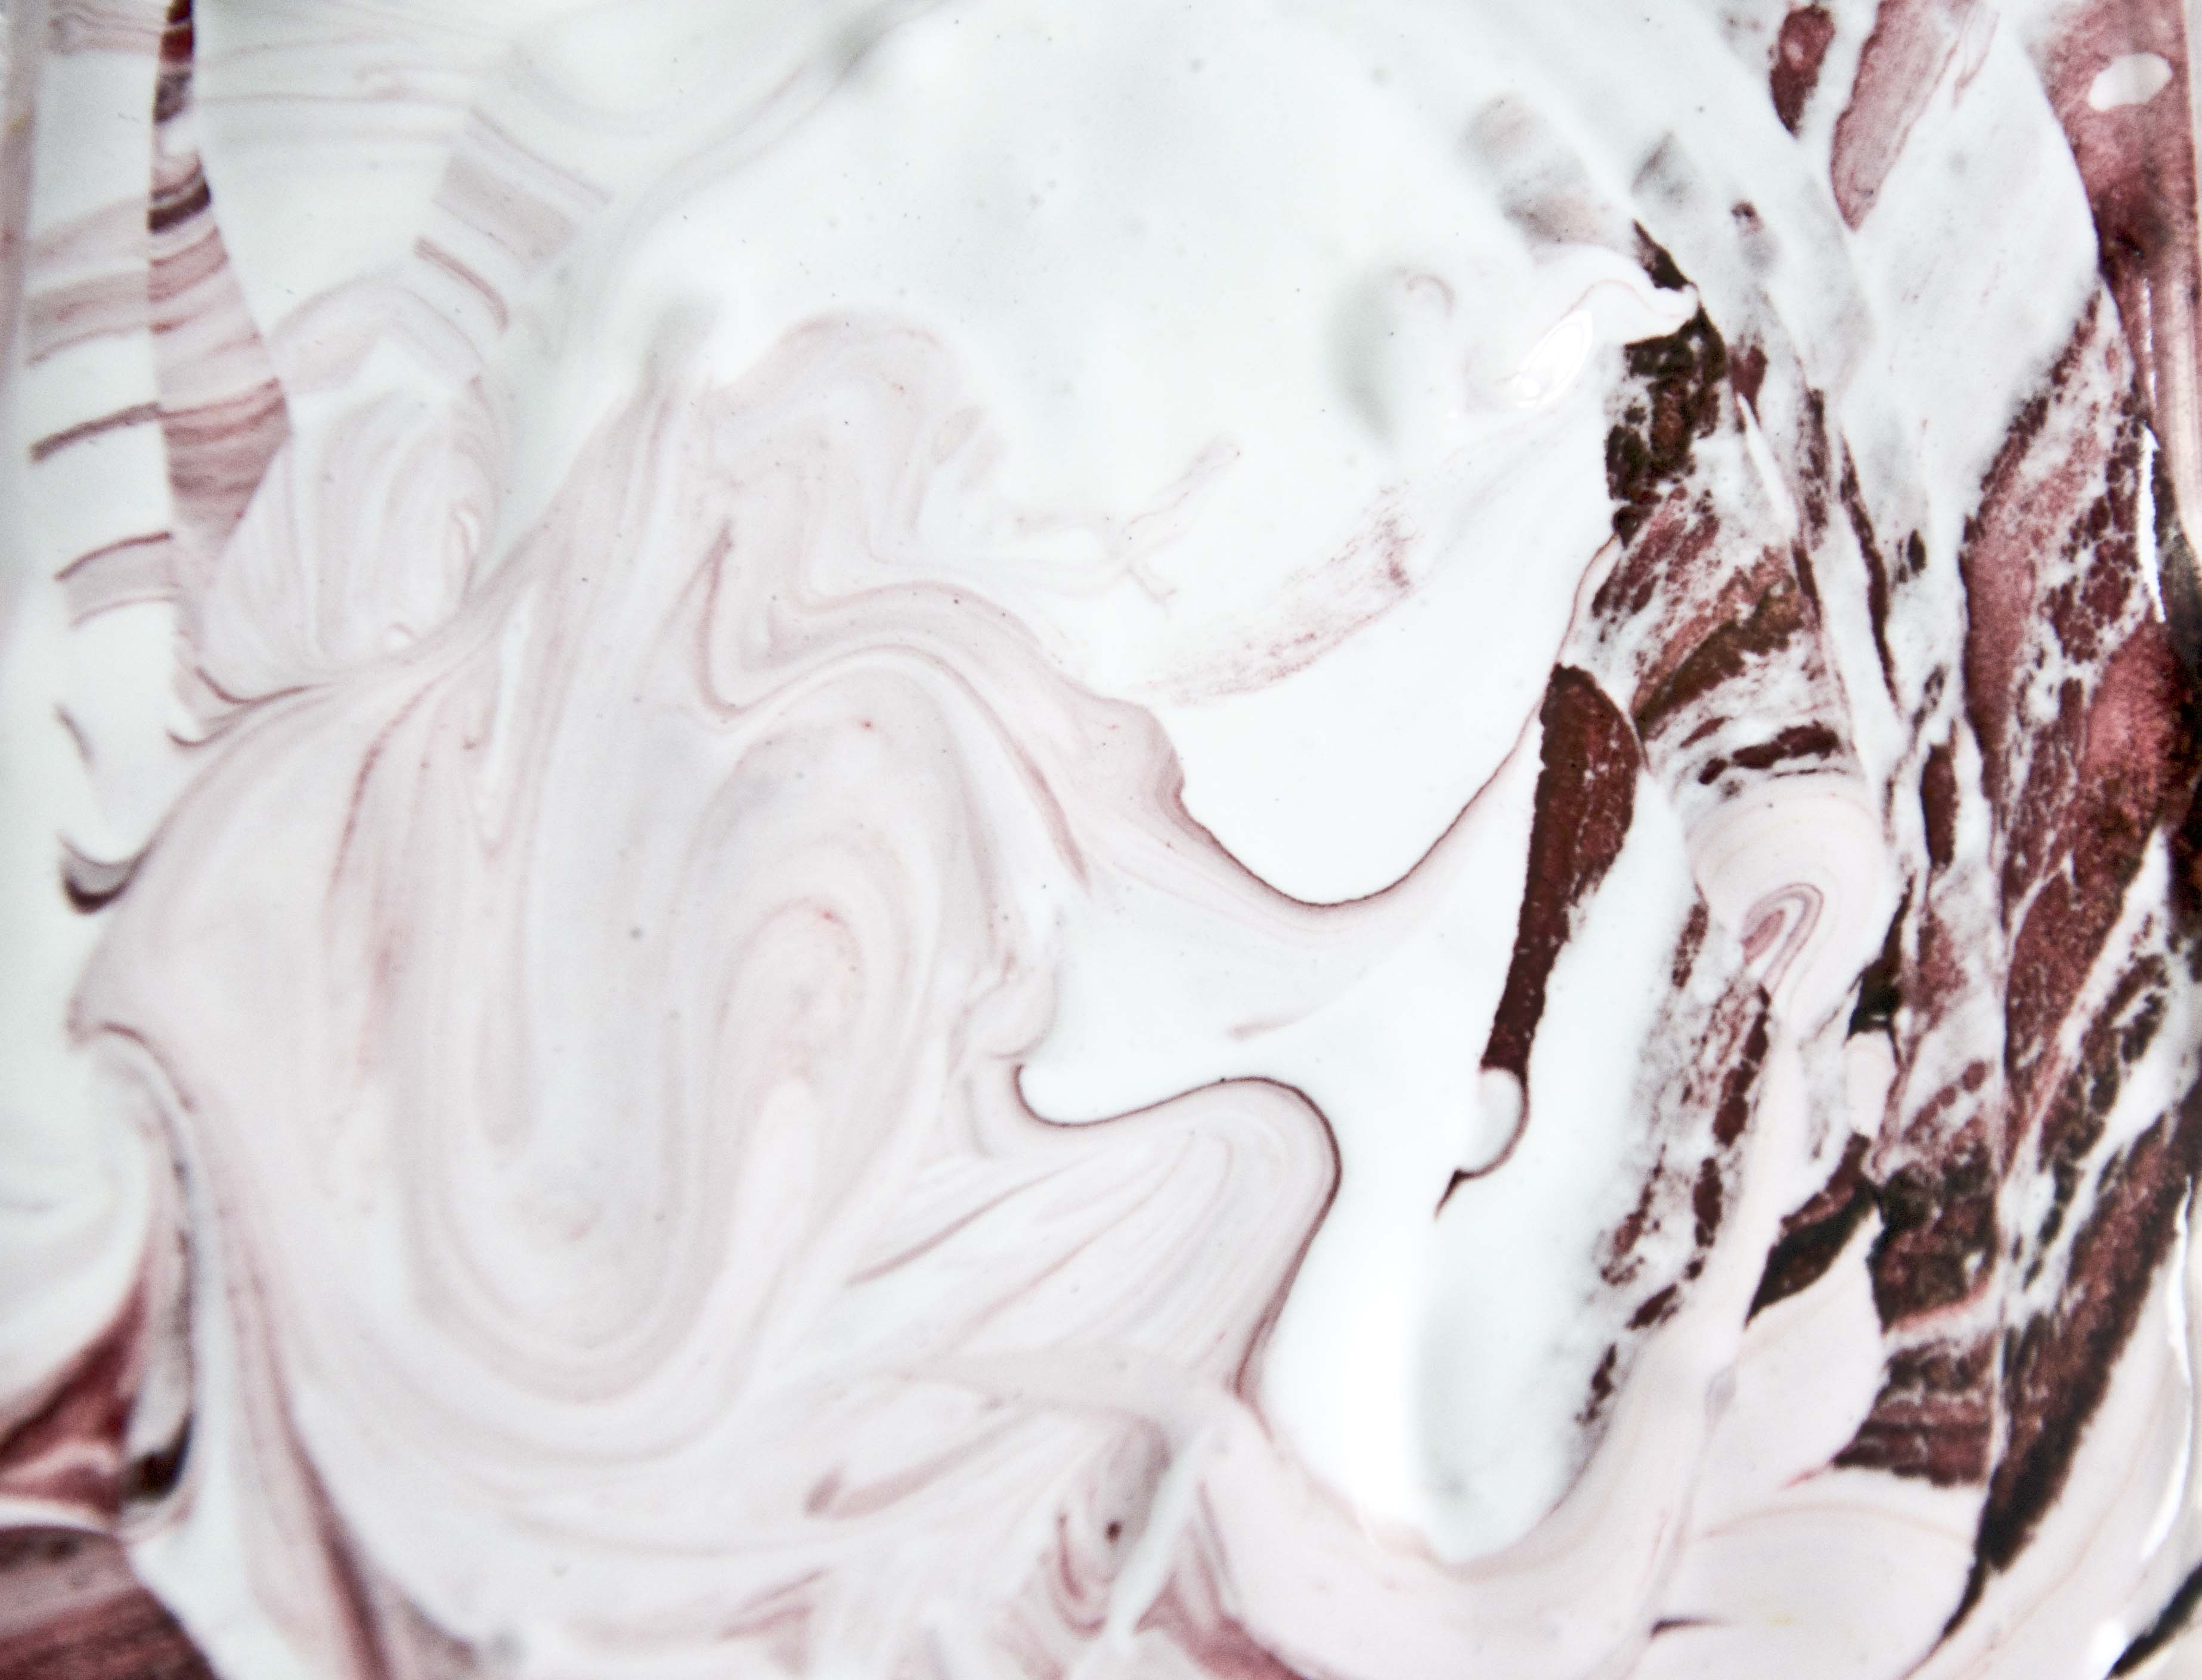 WHAT I YOU SEE IN MARSHMALLOWS_1